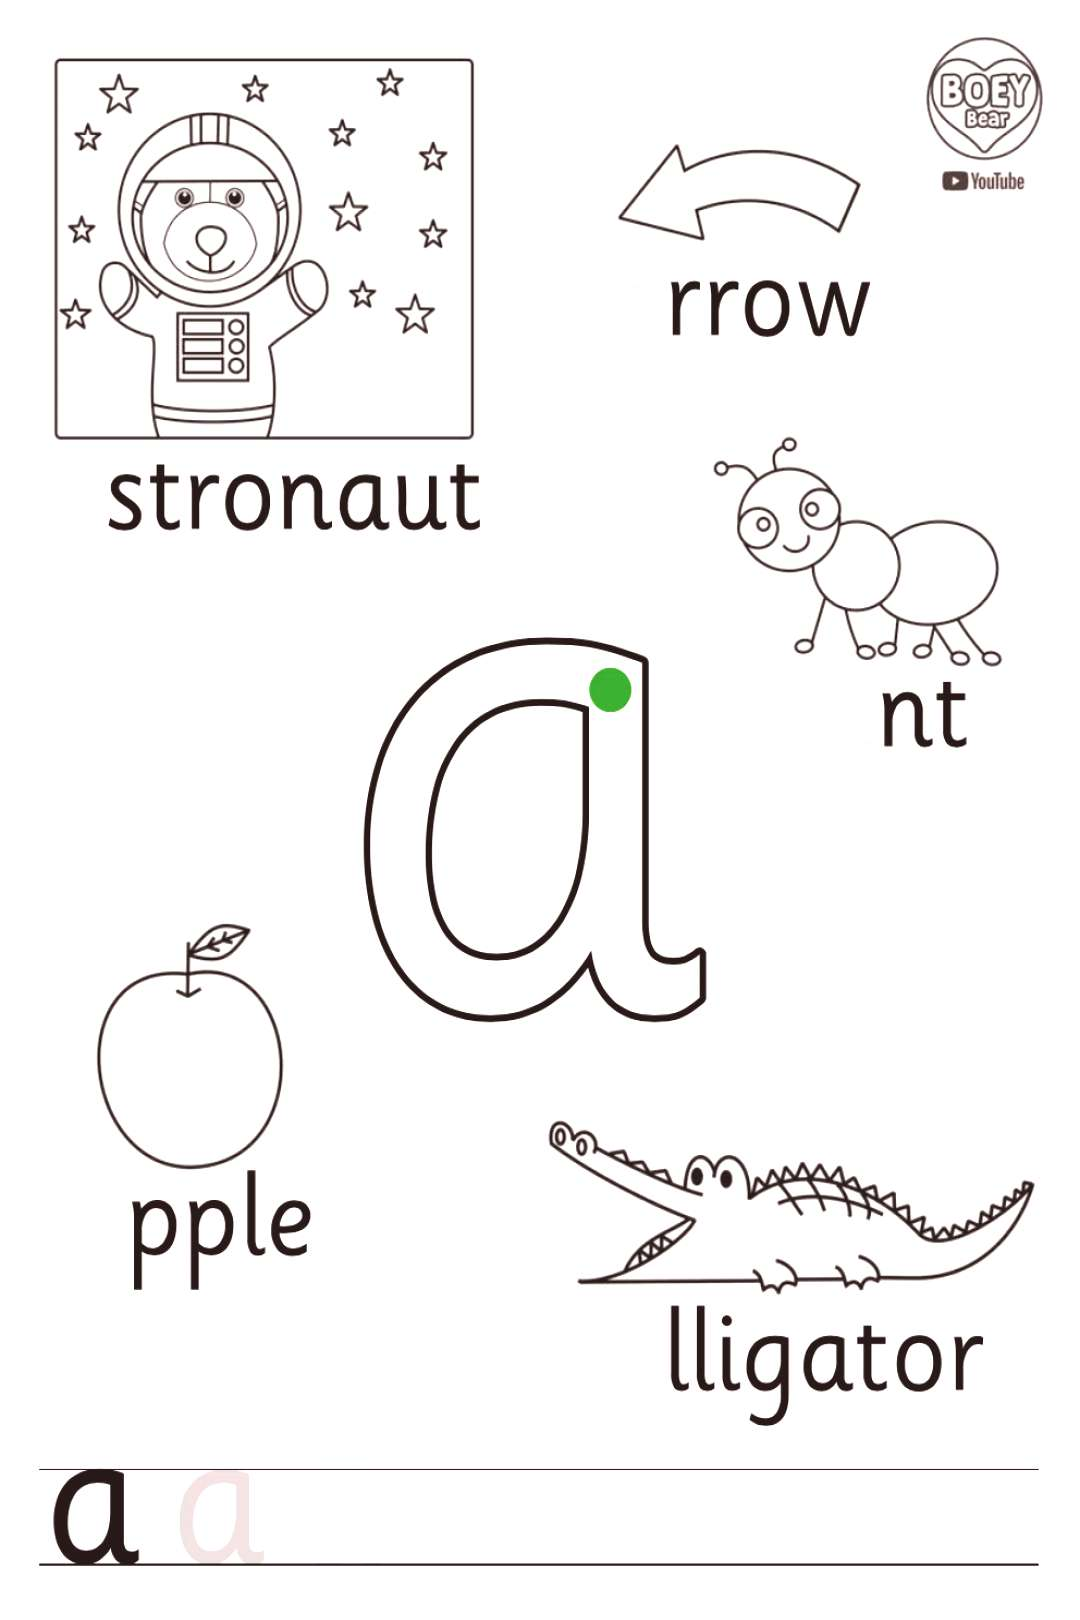 Free Phonics Printable amp the Letter A! Free Phonics Printable amp the Letter A! ampx1f43b BOEY Bear